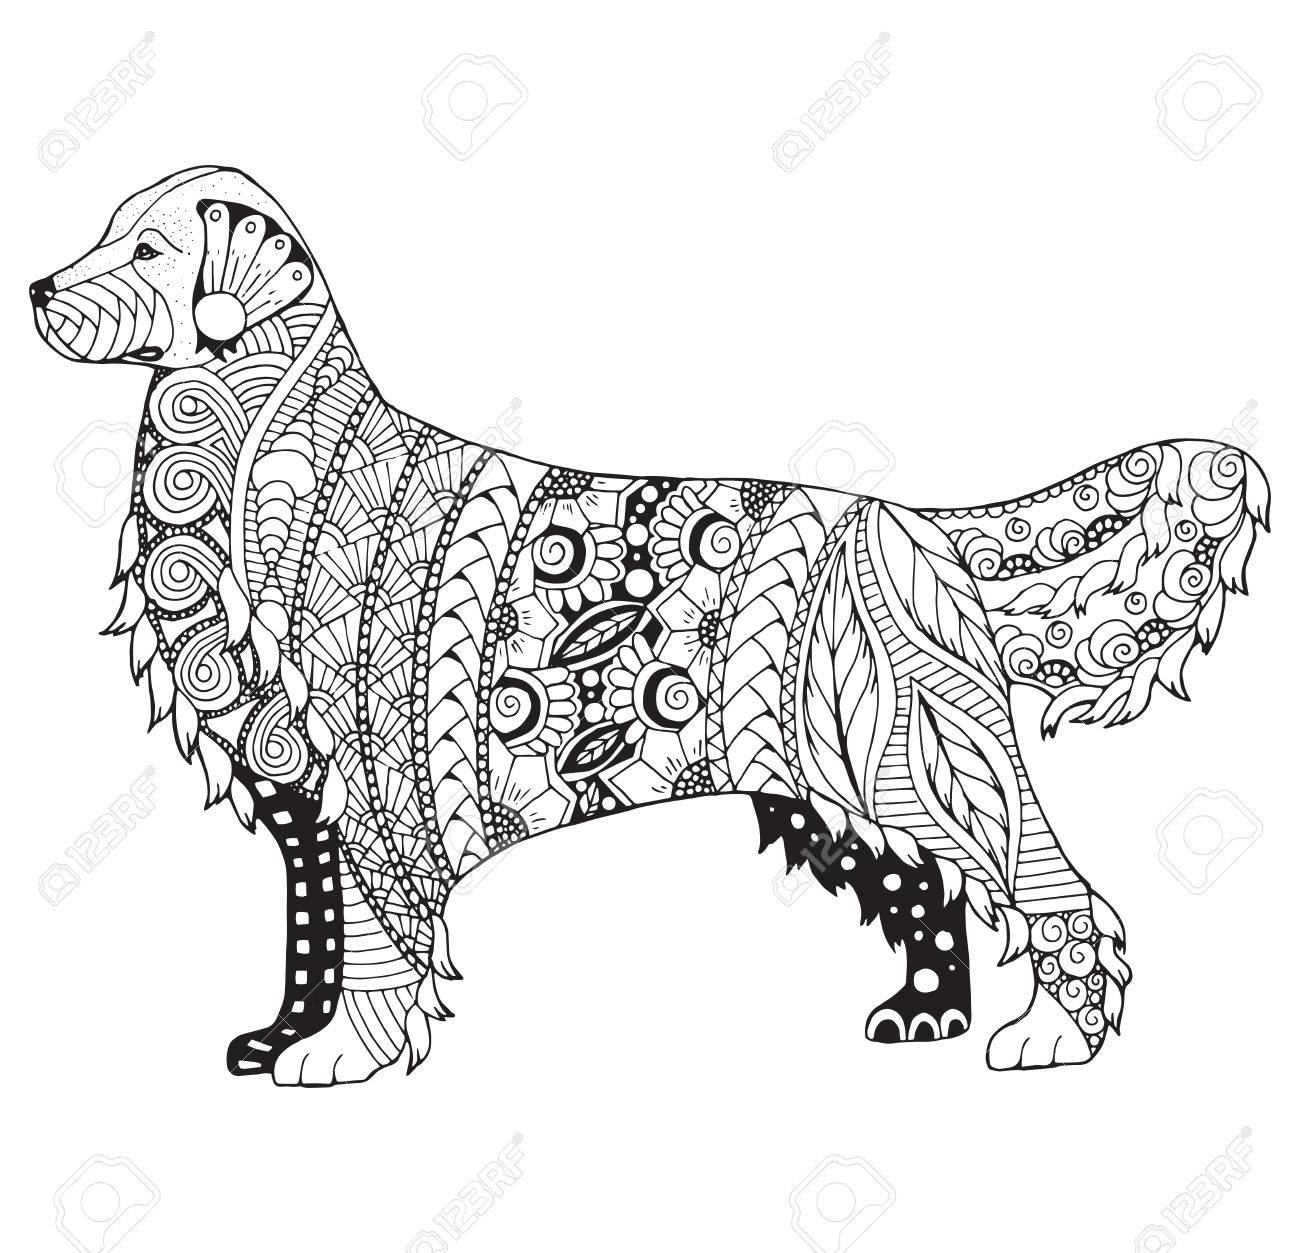 Coloriage Chien Noir Et Blanc.Golden Retriever Chien Zentangle Stylise Vecteur Illustration